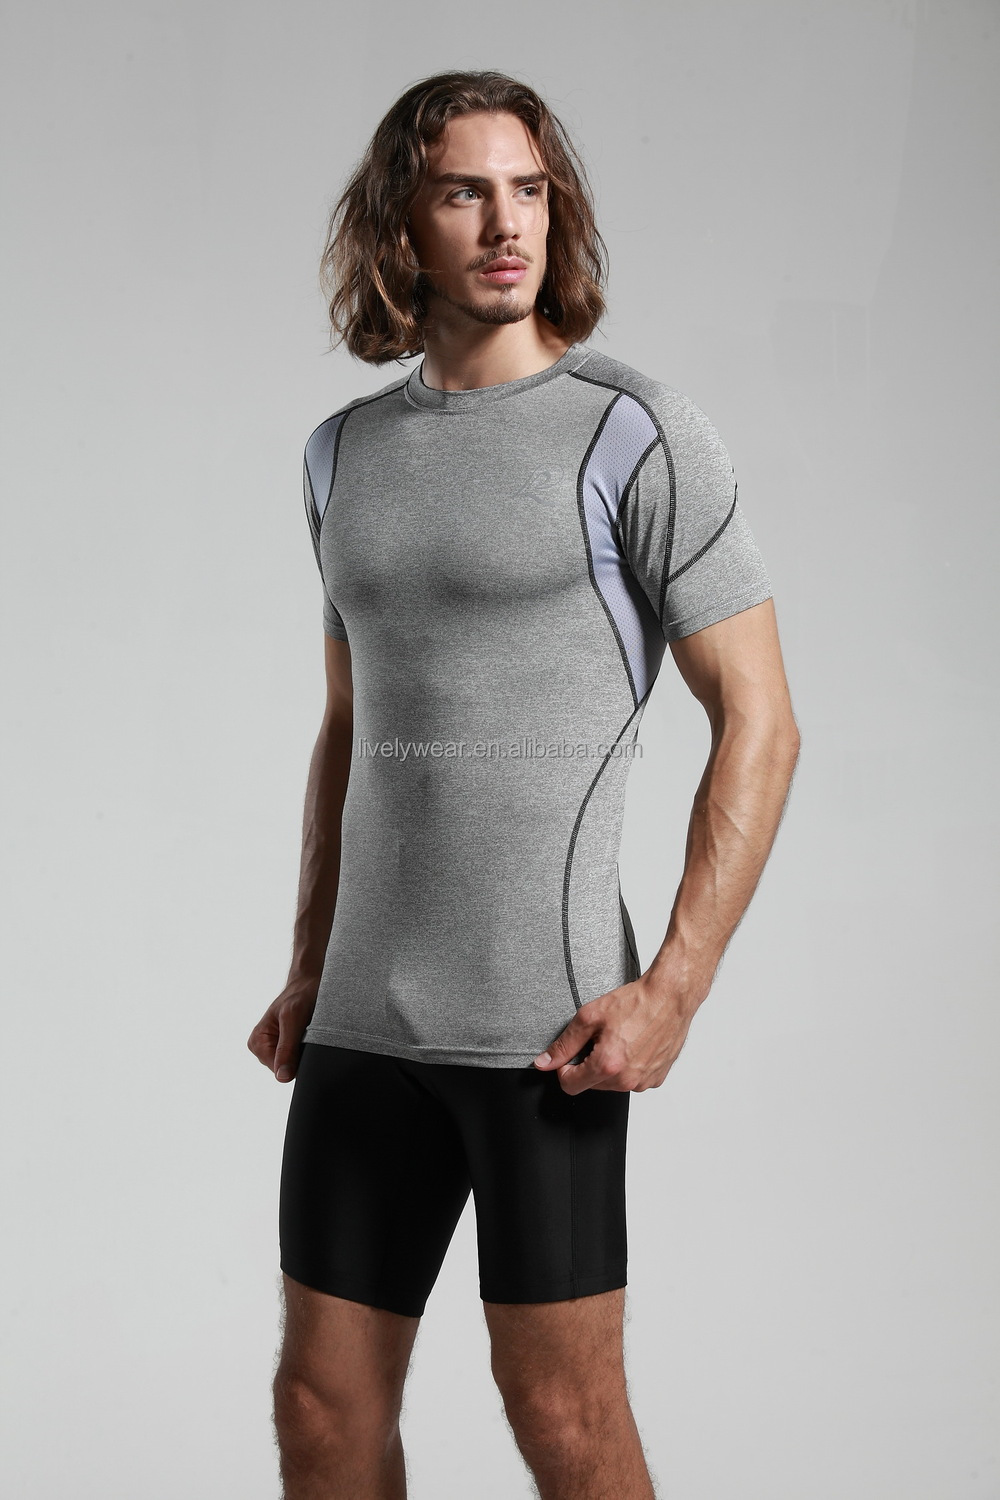 Lively Brand Women and Men Compression Sports Wear/ Dri Fit Shirts/Gym fit Compressed Shirt